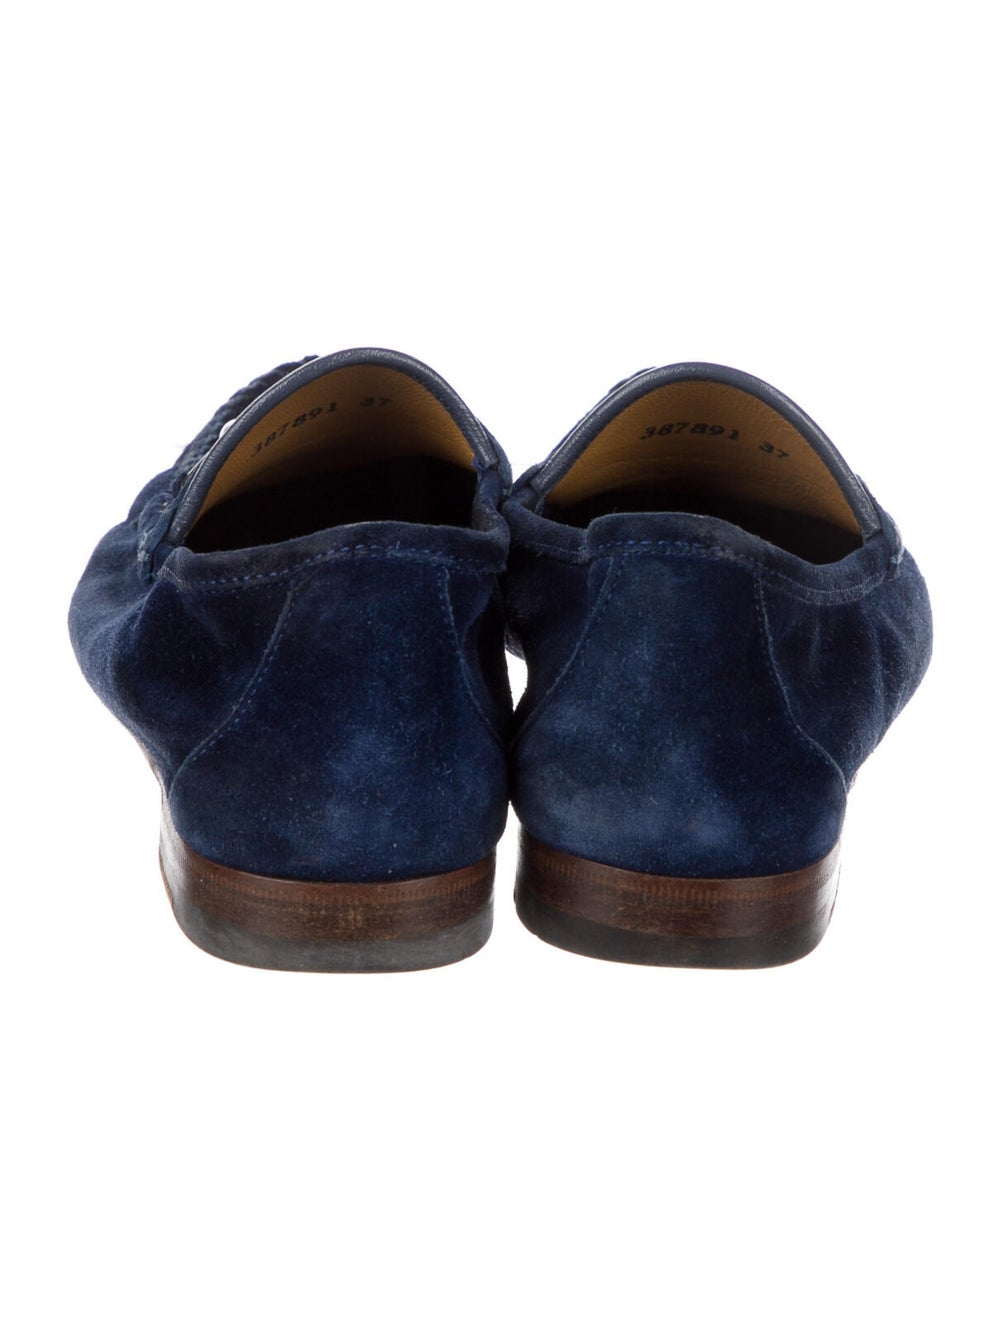 Gucci Suede Loafers Blue - image 4